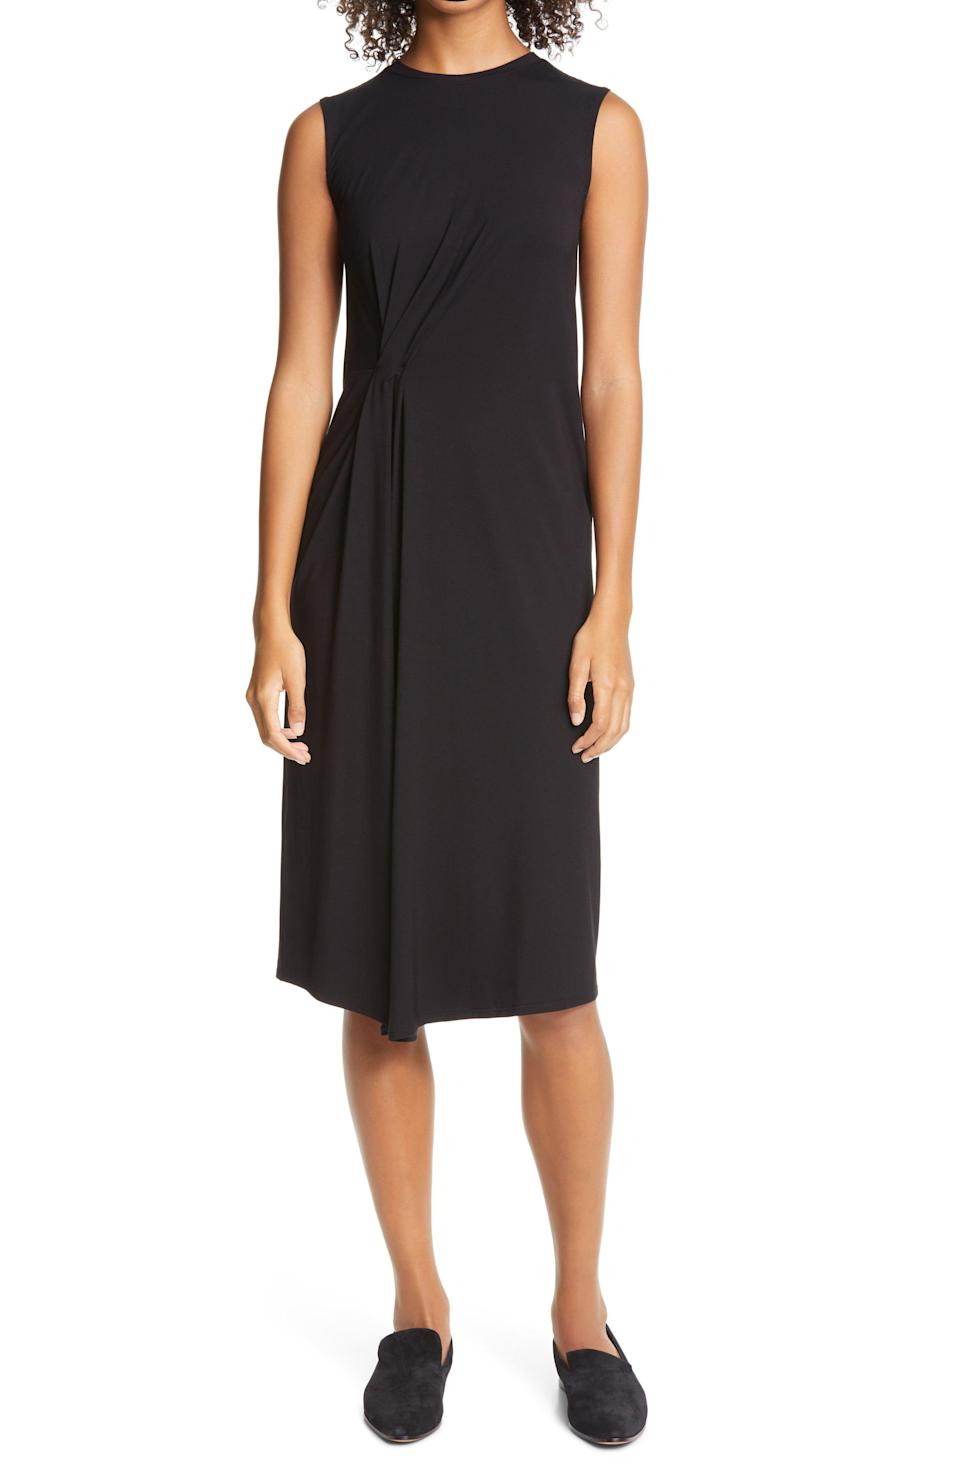 """<p><strong>VINCE</strong></p><p>nordstrom.com</p><p><strong>$99.90</strong></p><p><a href=""""https://go.redirectingat.com?id=74968X1596630&url=https%3A%2F%2Fwww.nordstrom.com%2Fs%2Fvince-gathered-sleeveless-dress%2F5598713&sref=https%3A%2F%2Fwww.townandcountrymag.com%2Fstyle%2Ffashion-trends%2Fg33595537%2Fnordstrom-anniversary-sale-2020-womens-clothing%2F"""" rel=""""nofollow noopener"""" target=""""_blank"""" data-ylk=""""slk:Shop Now"""" class=""""link rapid-noclick-resp"""">Shop Now</a></p><p><em>Originally: $195</em></p>"""